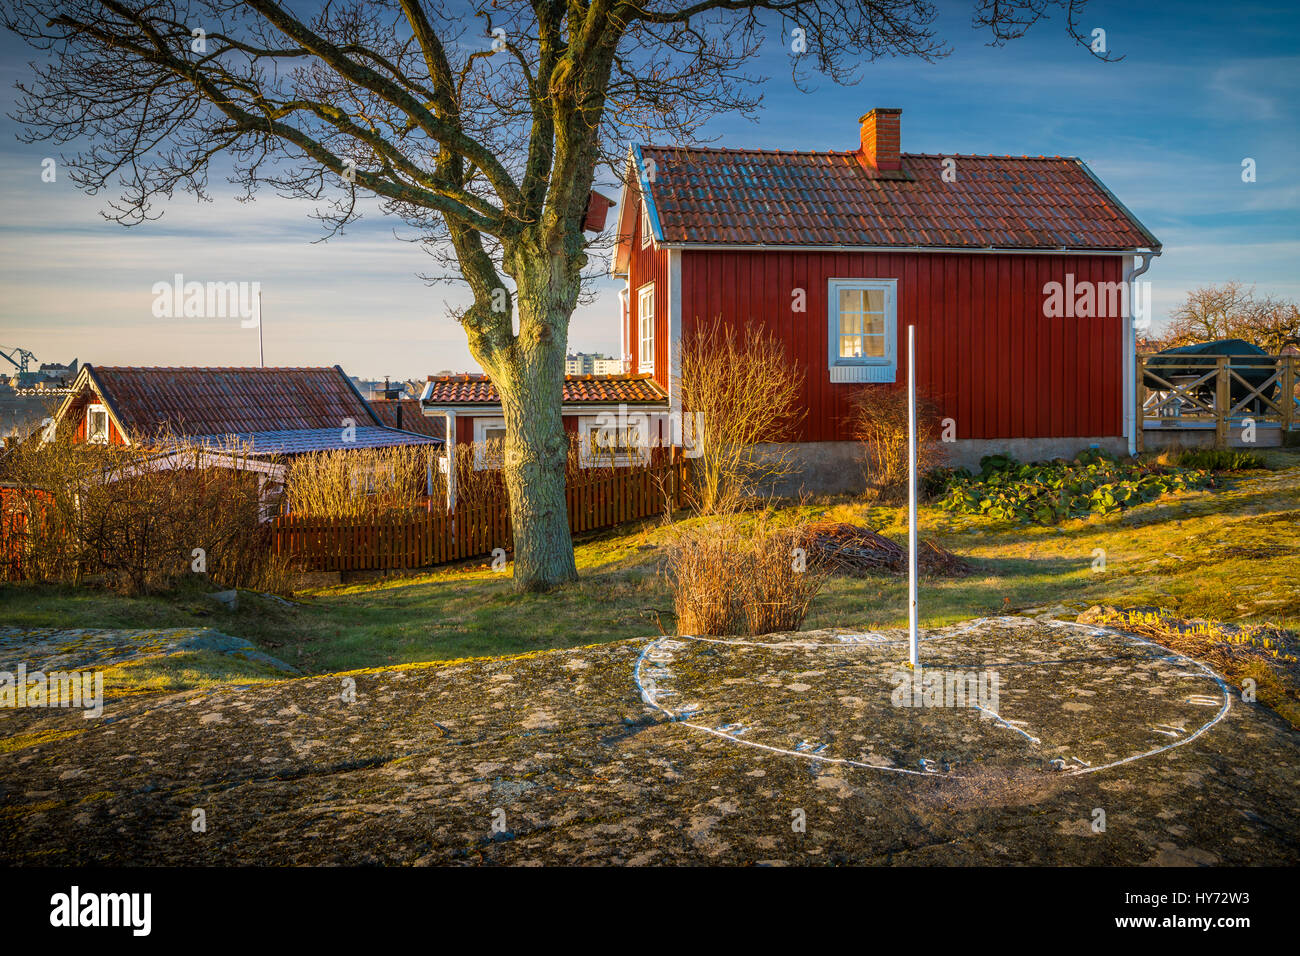 Typical Swedish small cottage in Karlskona, Sweden ..... Karlskrona is a locality and the seat of Karlskrona Municipality, - Stock Image